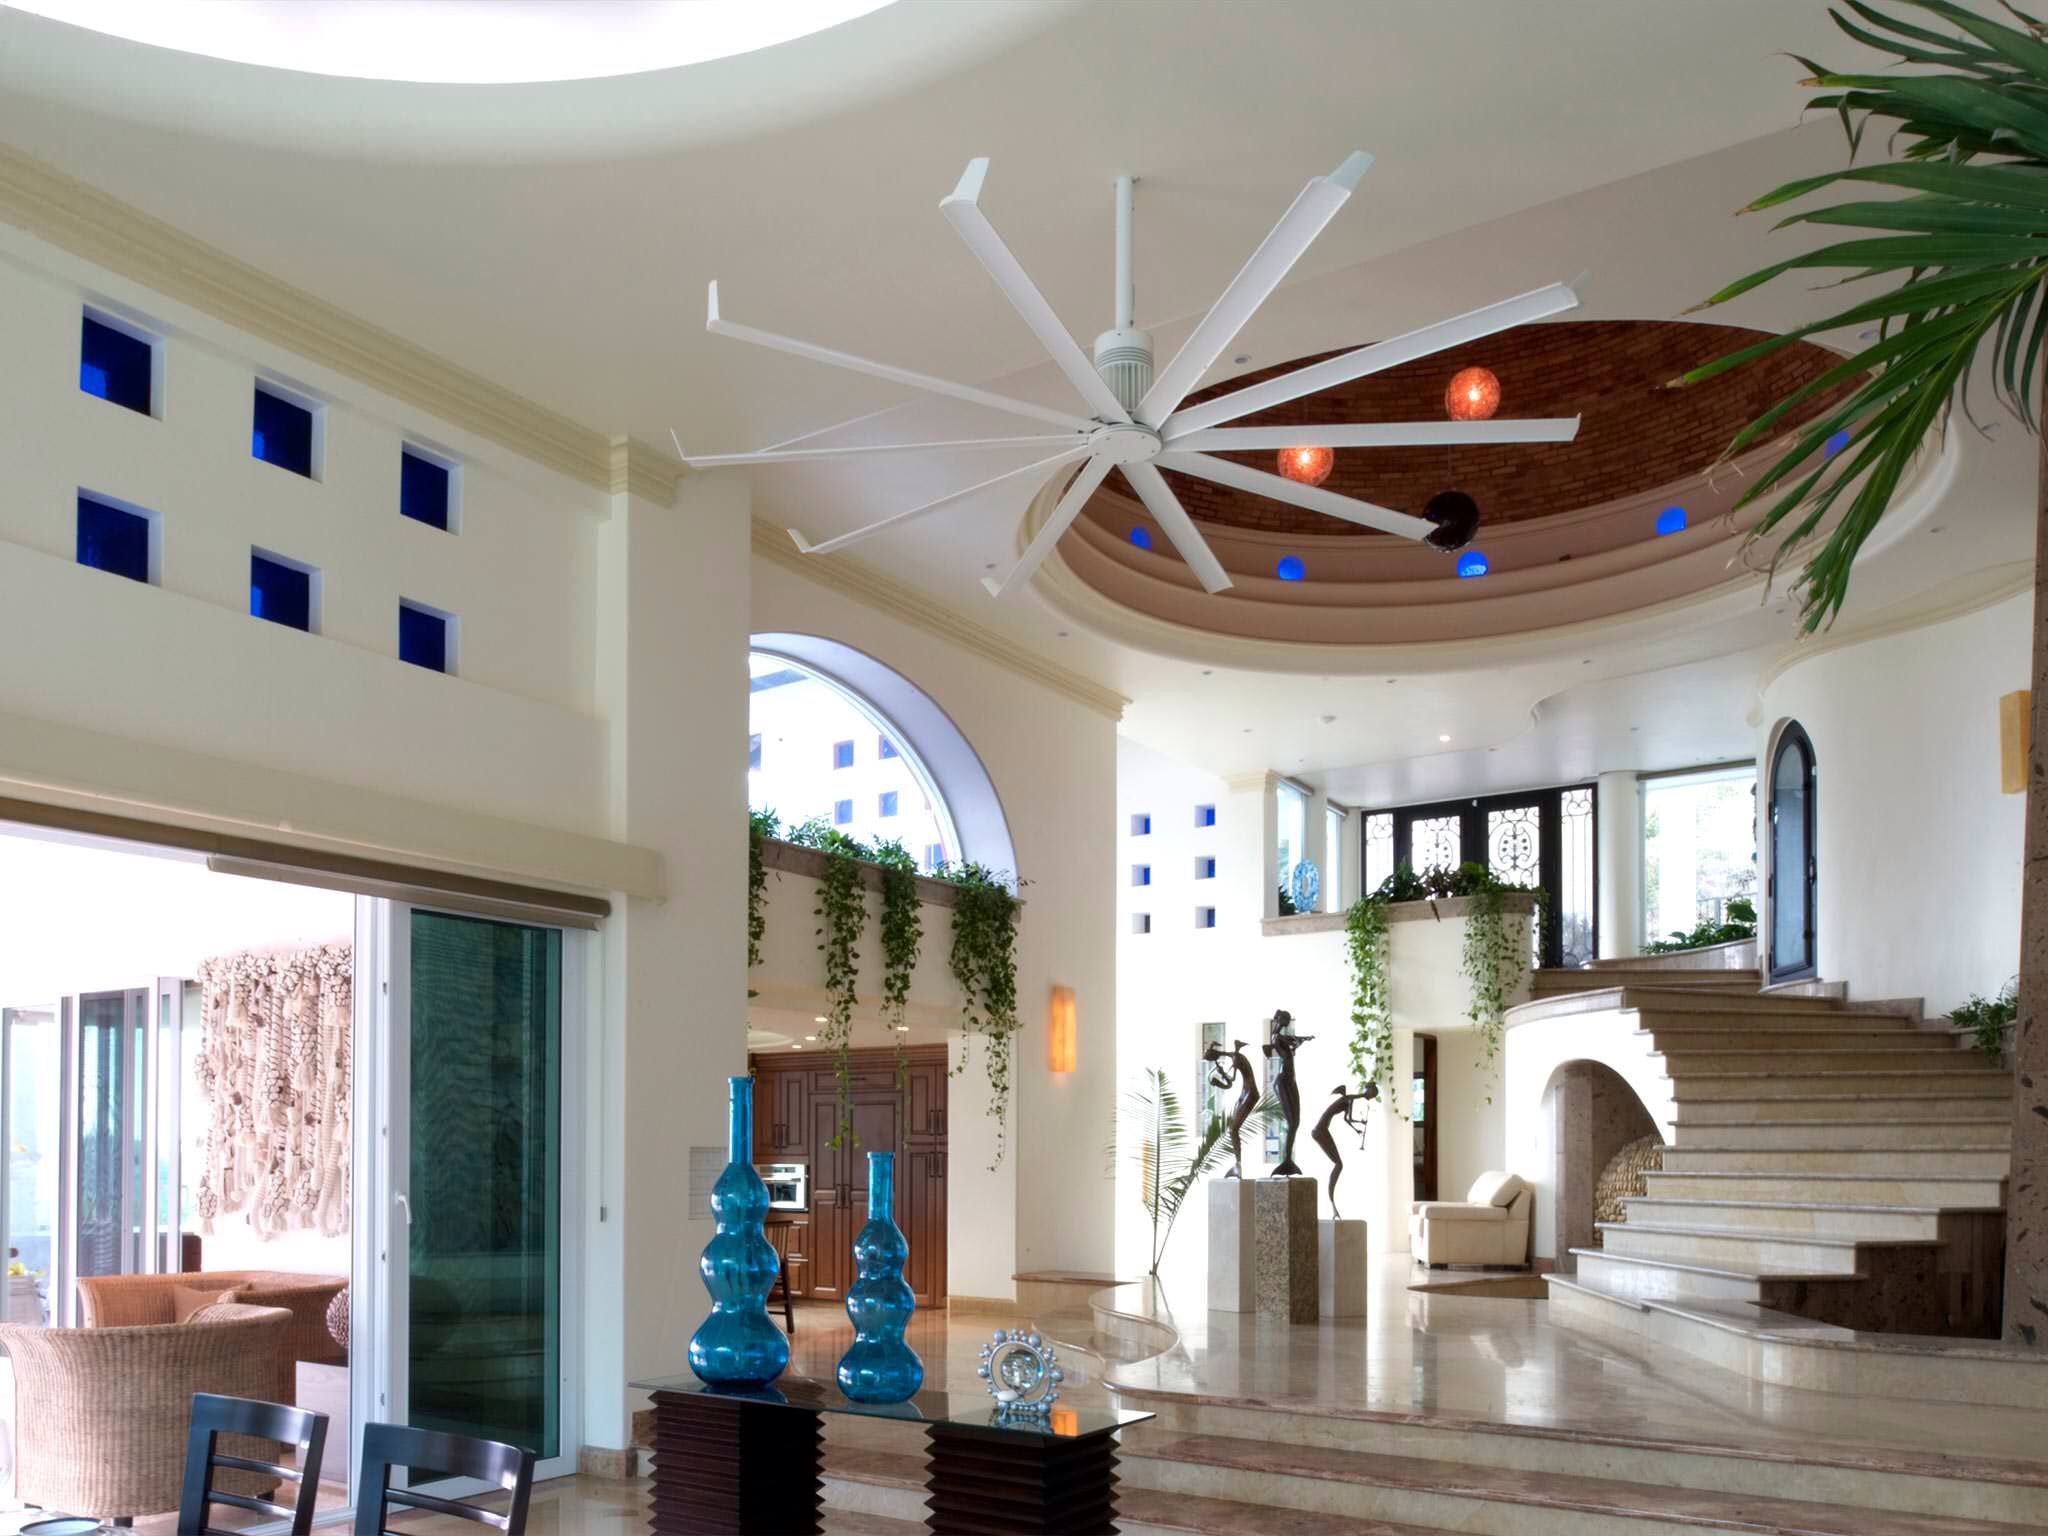 Ceiling fan Bigass fans HVAC Systems and Equipments